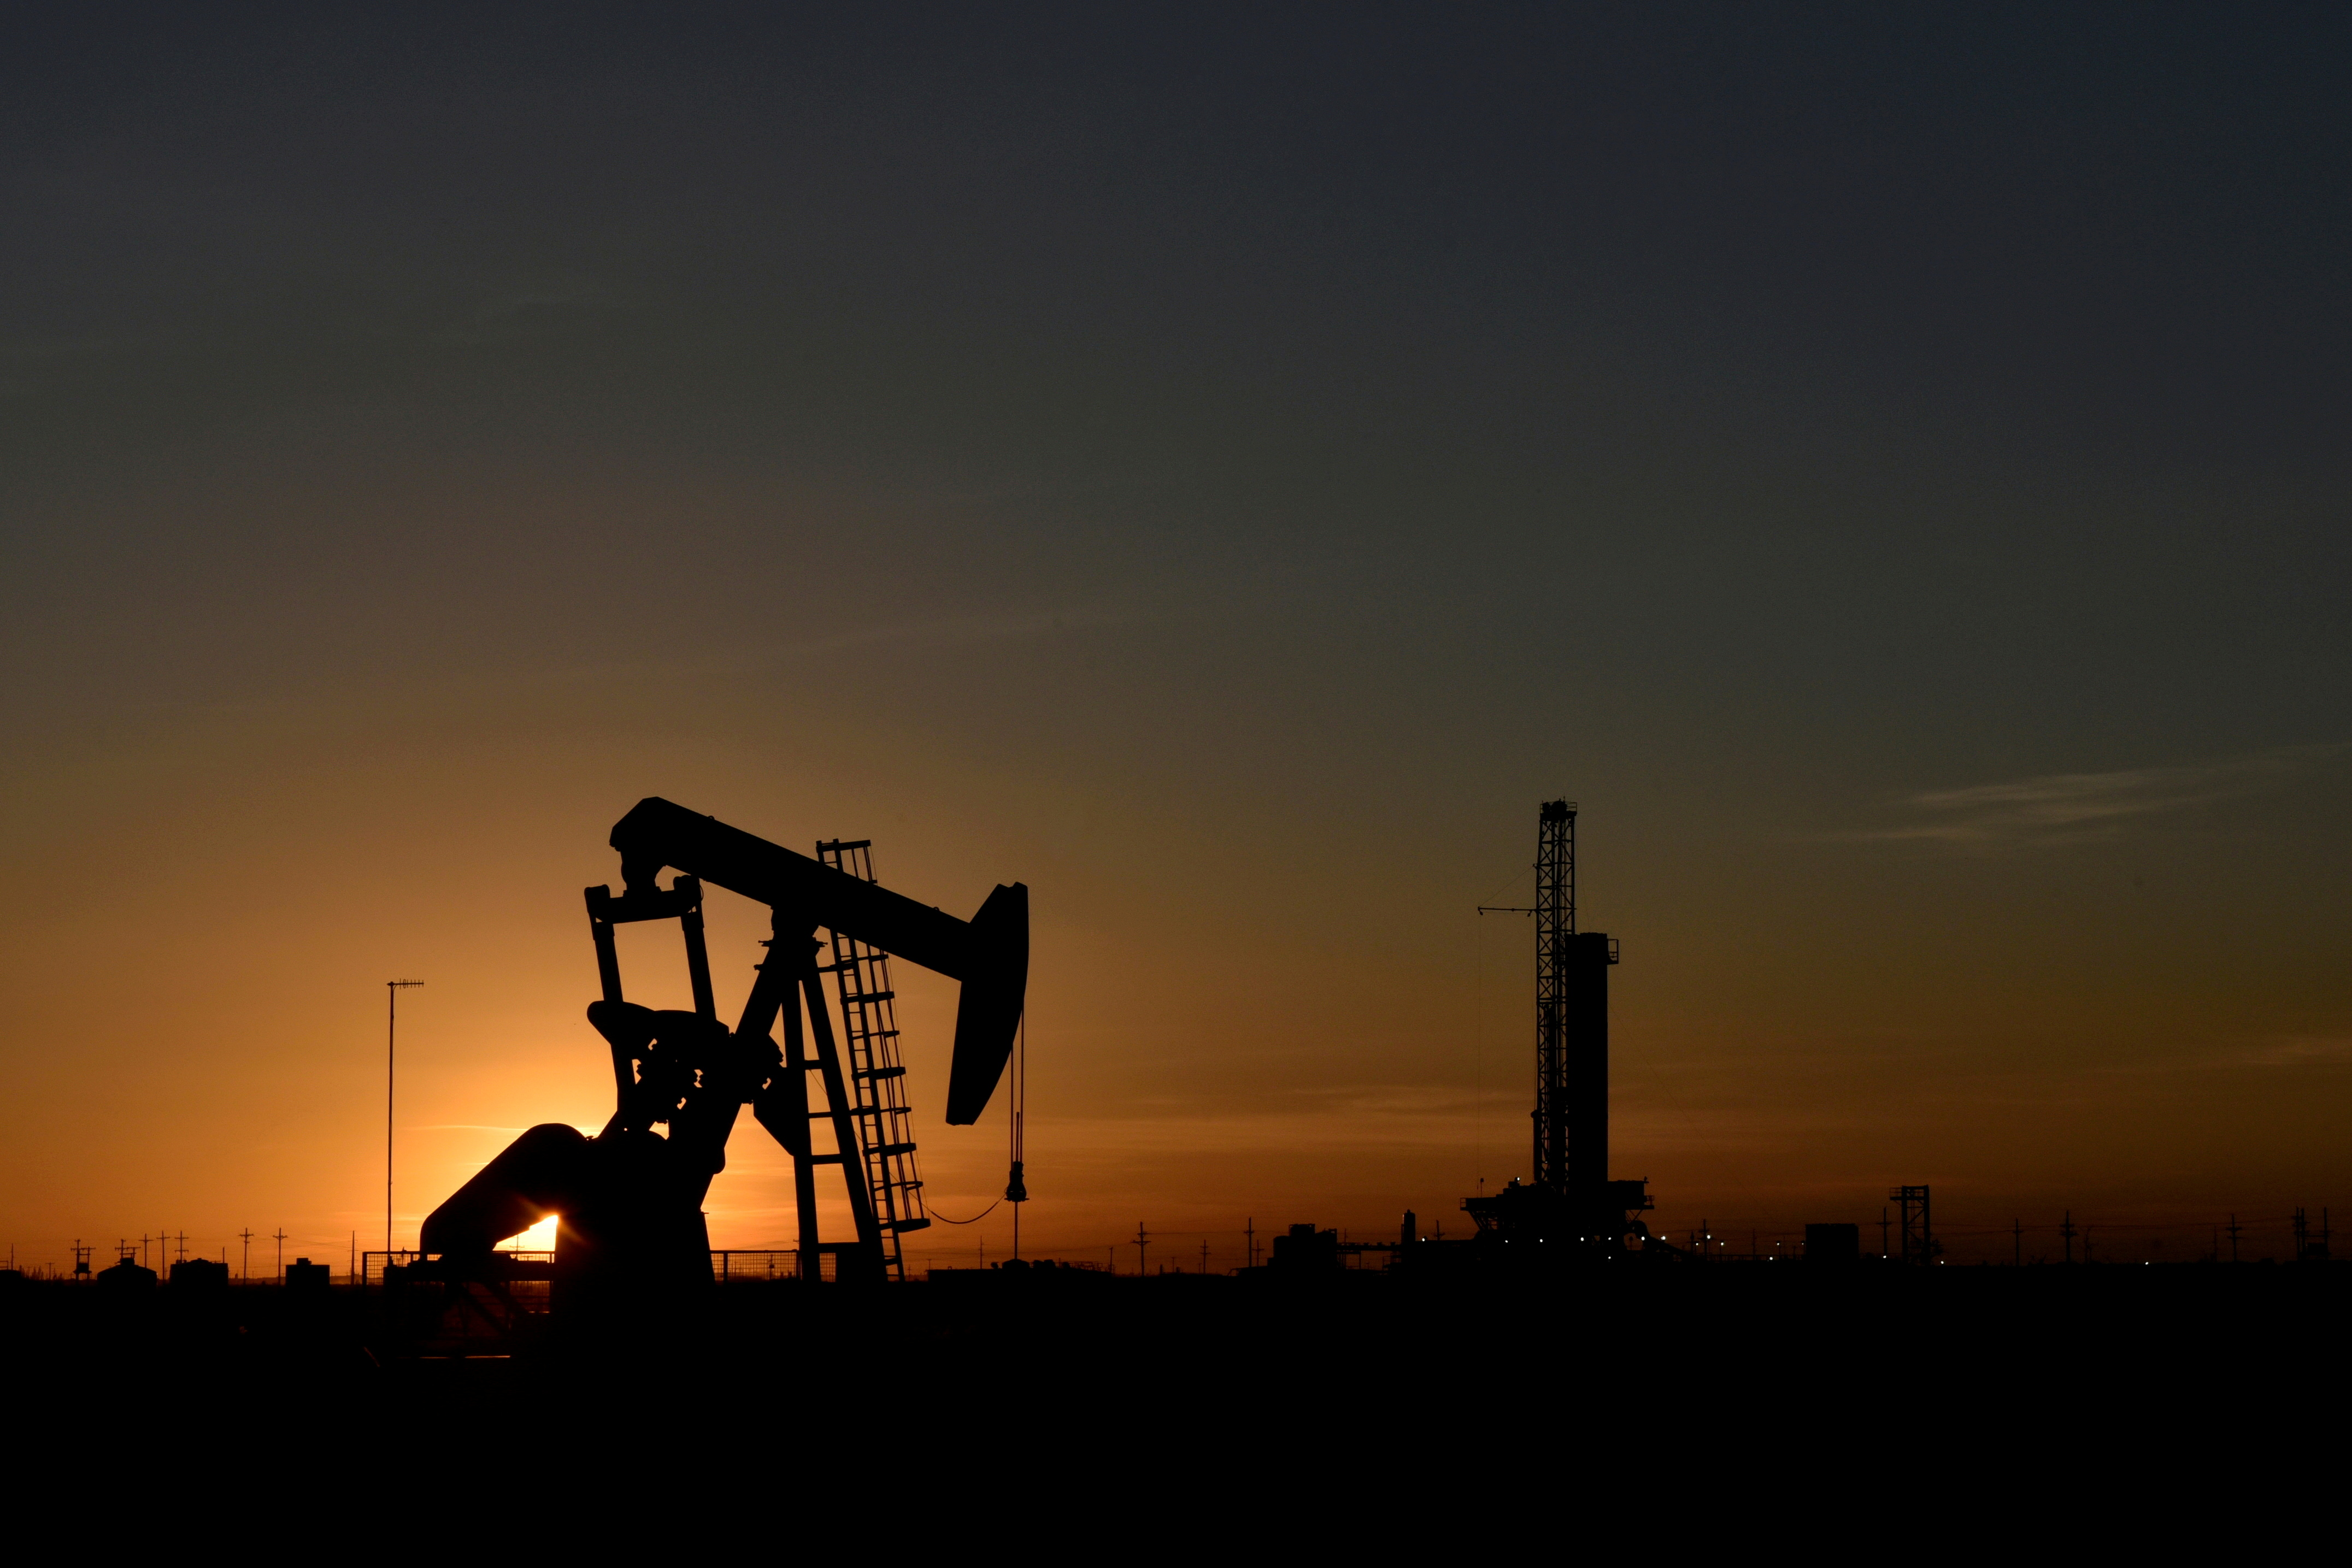 A pump jack operates in front of a drilling rig at sunset in an oil field in Midland, Texas U.S. August 22, 2018. REUTERS/Nick Oxford